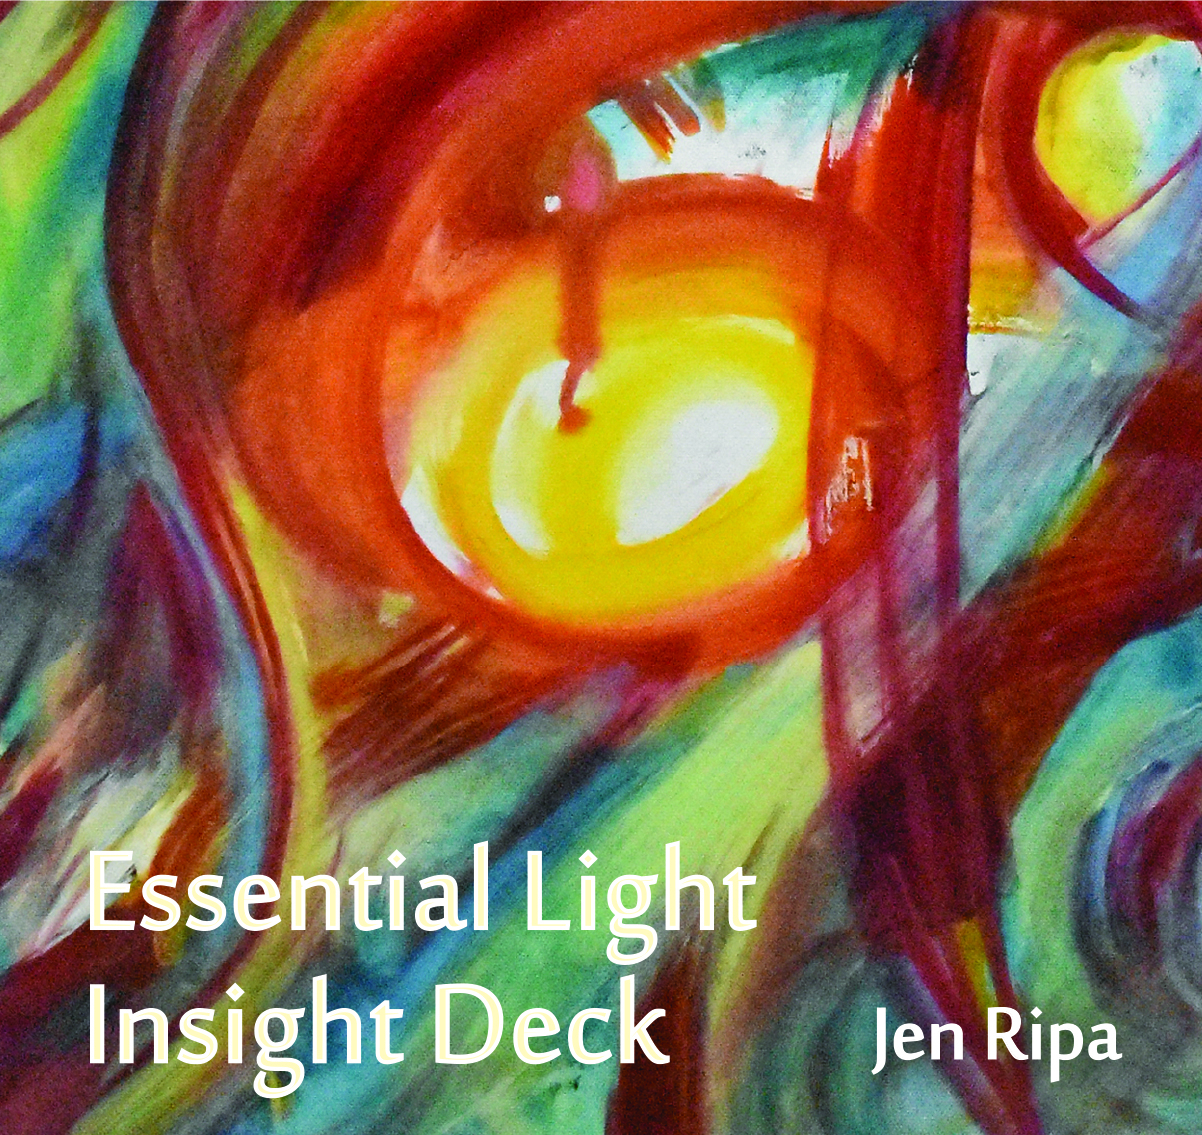 Preorder your copy of the Essential Light Insight Deck!